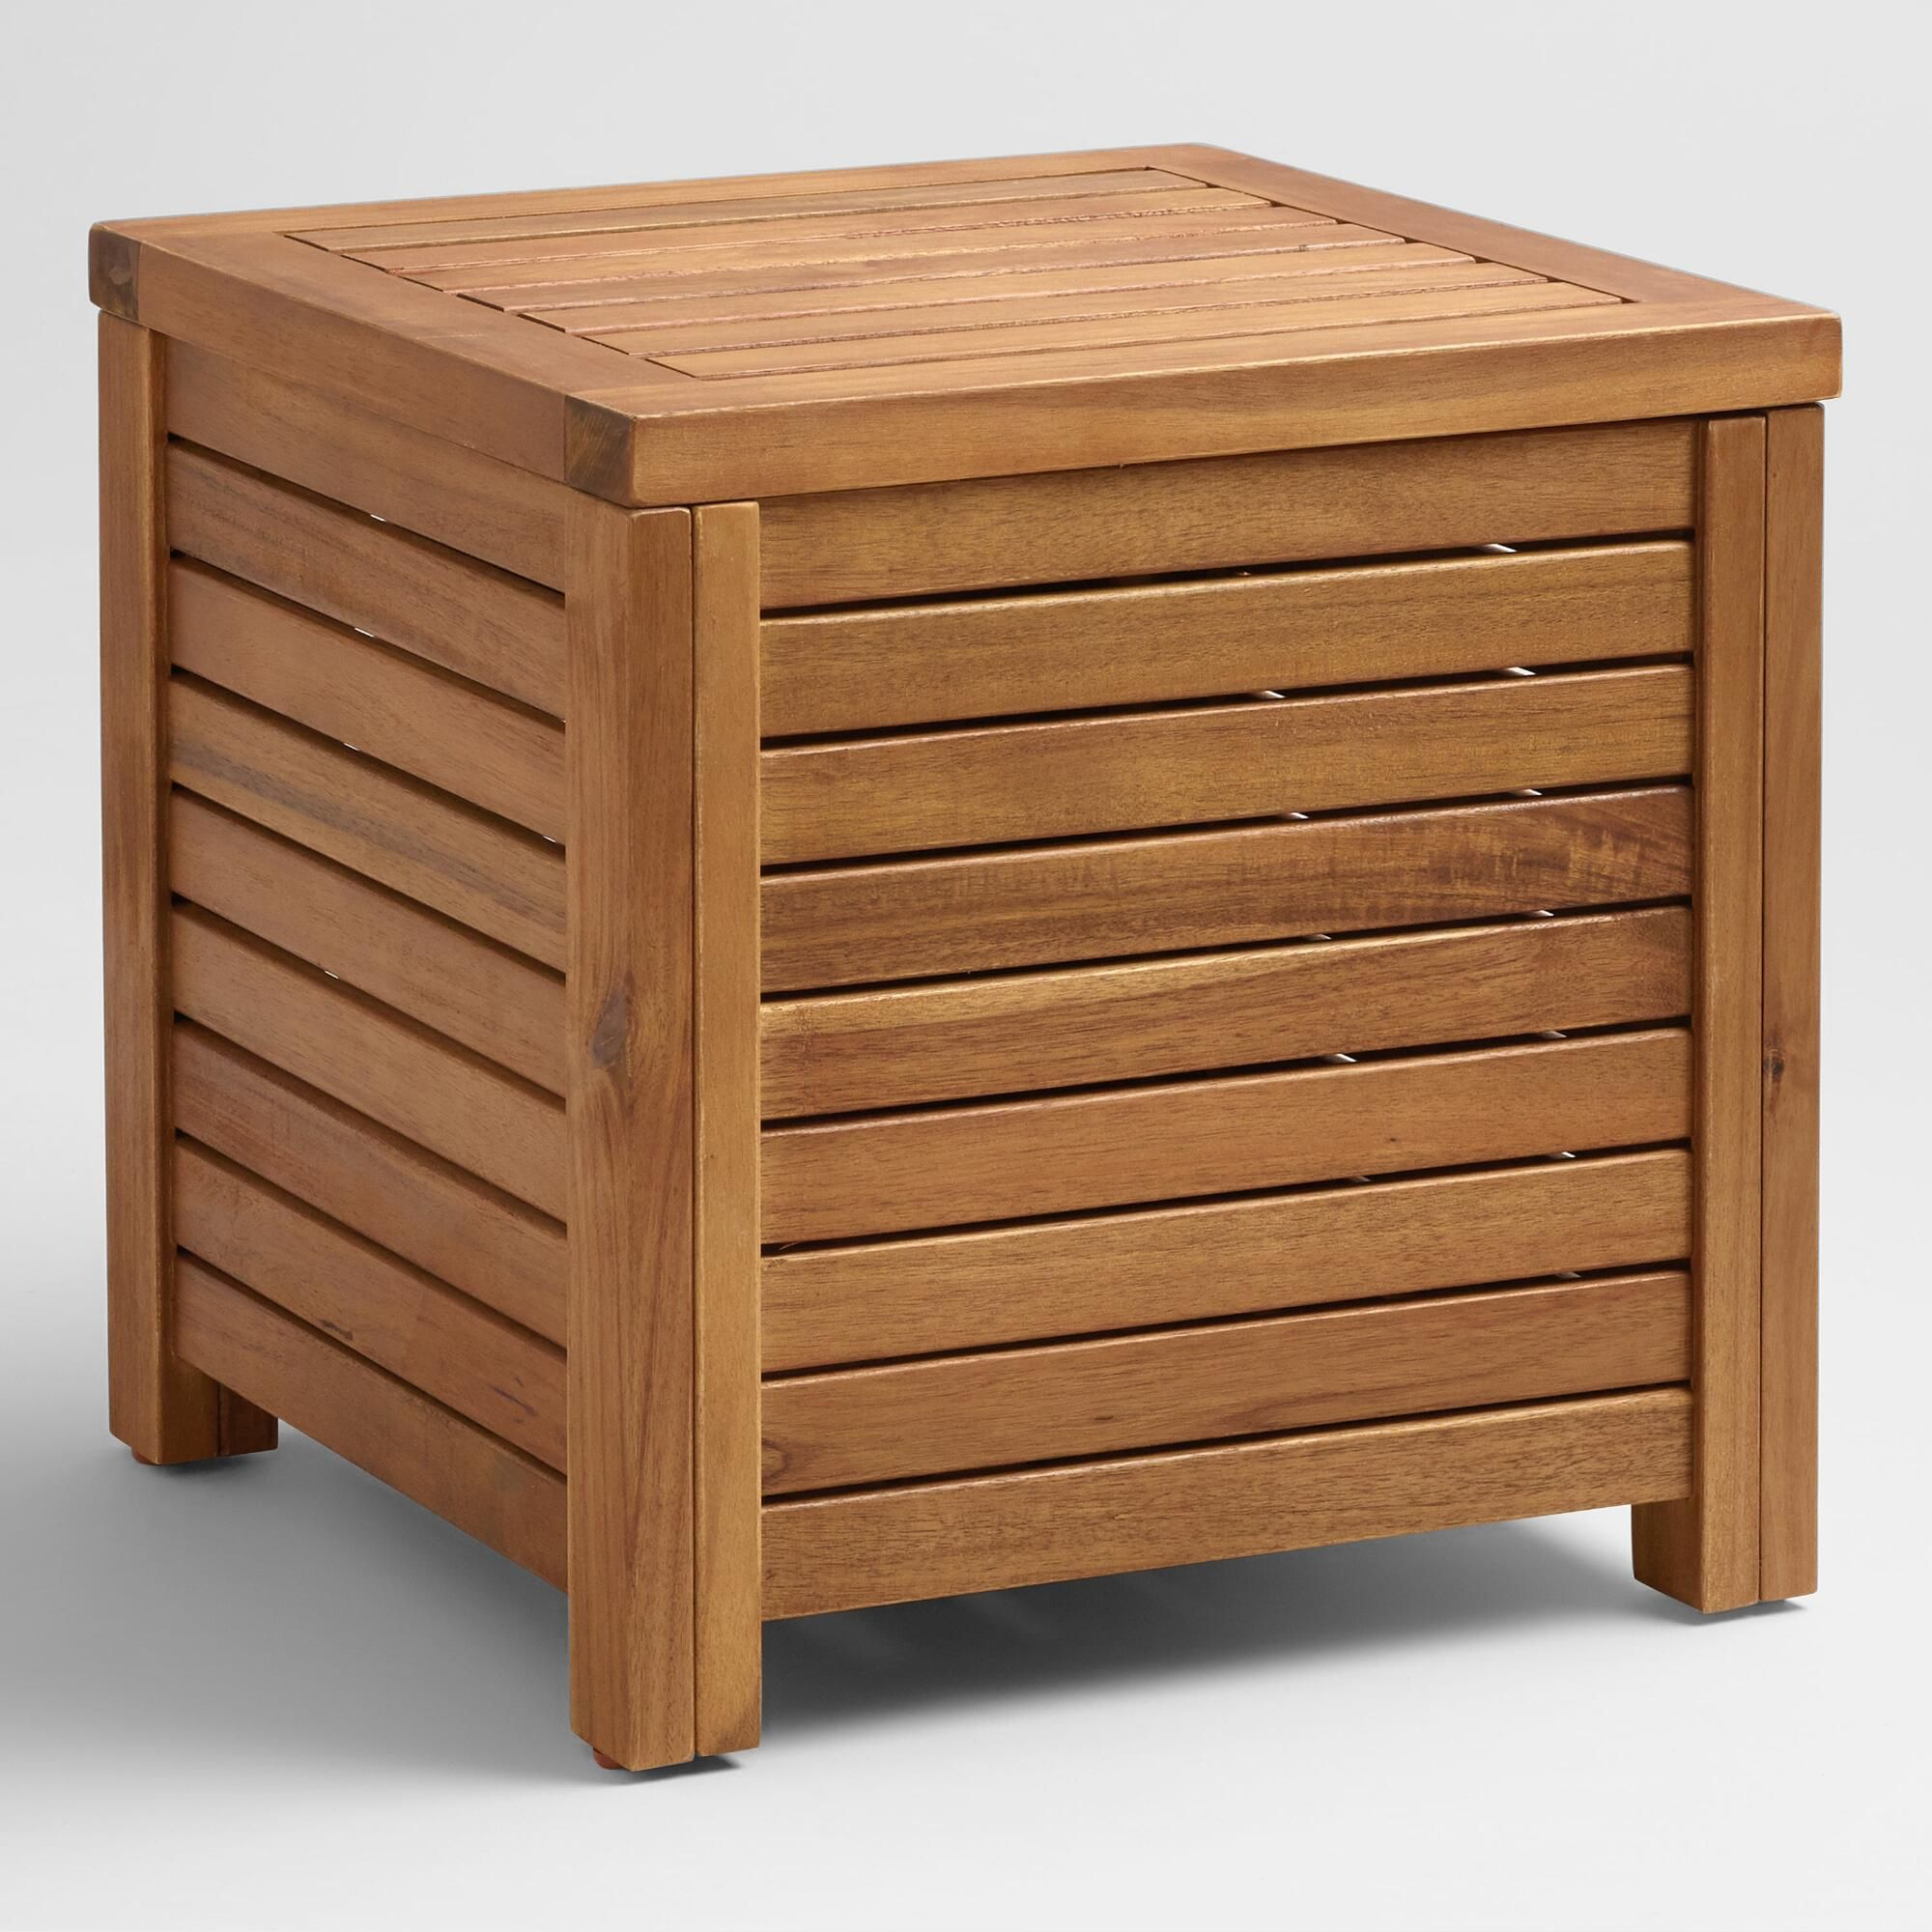 Wood Praiano Outdoor Storage Side Table Patio Storage Patio